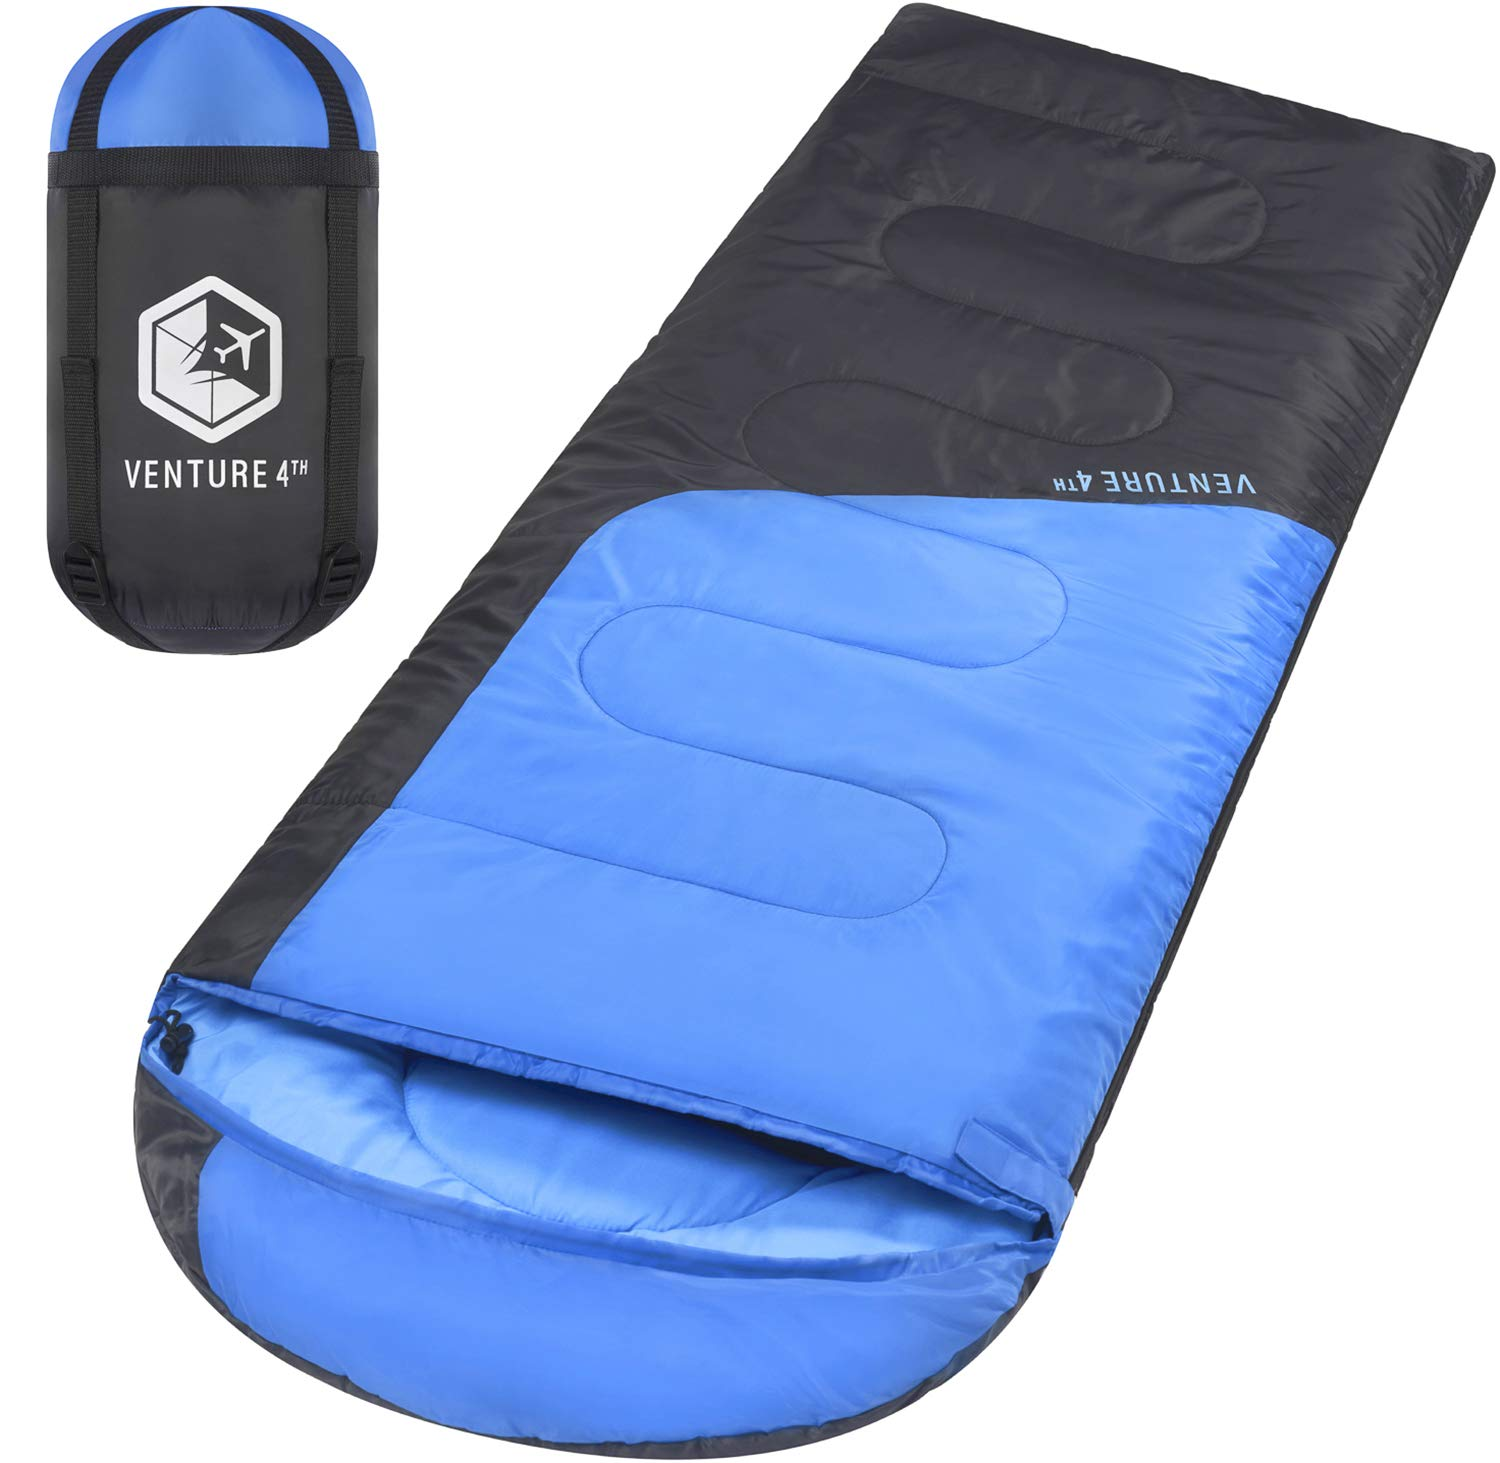 Backpacking Sleeping Bag Lightweight, Comfortable, Water Resistant, 3 Season Sleeping Bag for Adults Kids Ideal for Hiking, Camping Outdoor Adventures – Regular Size